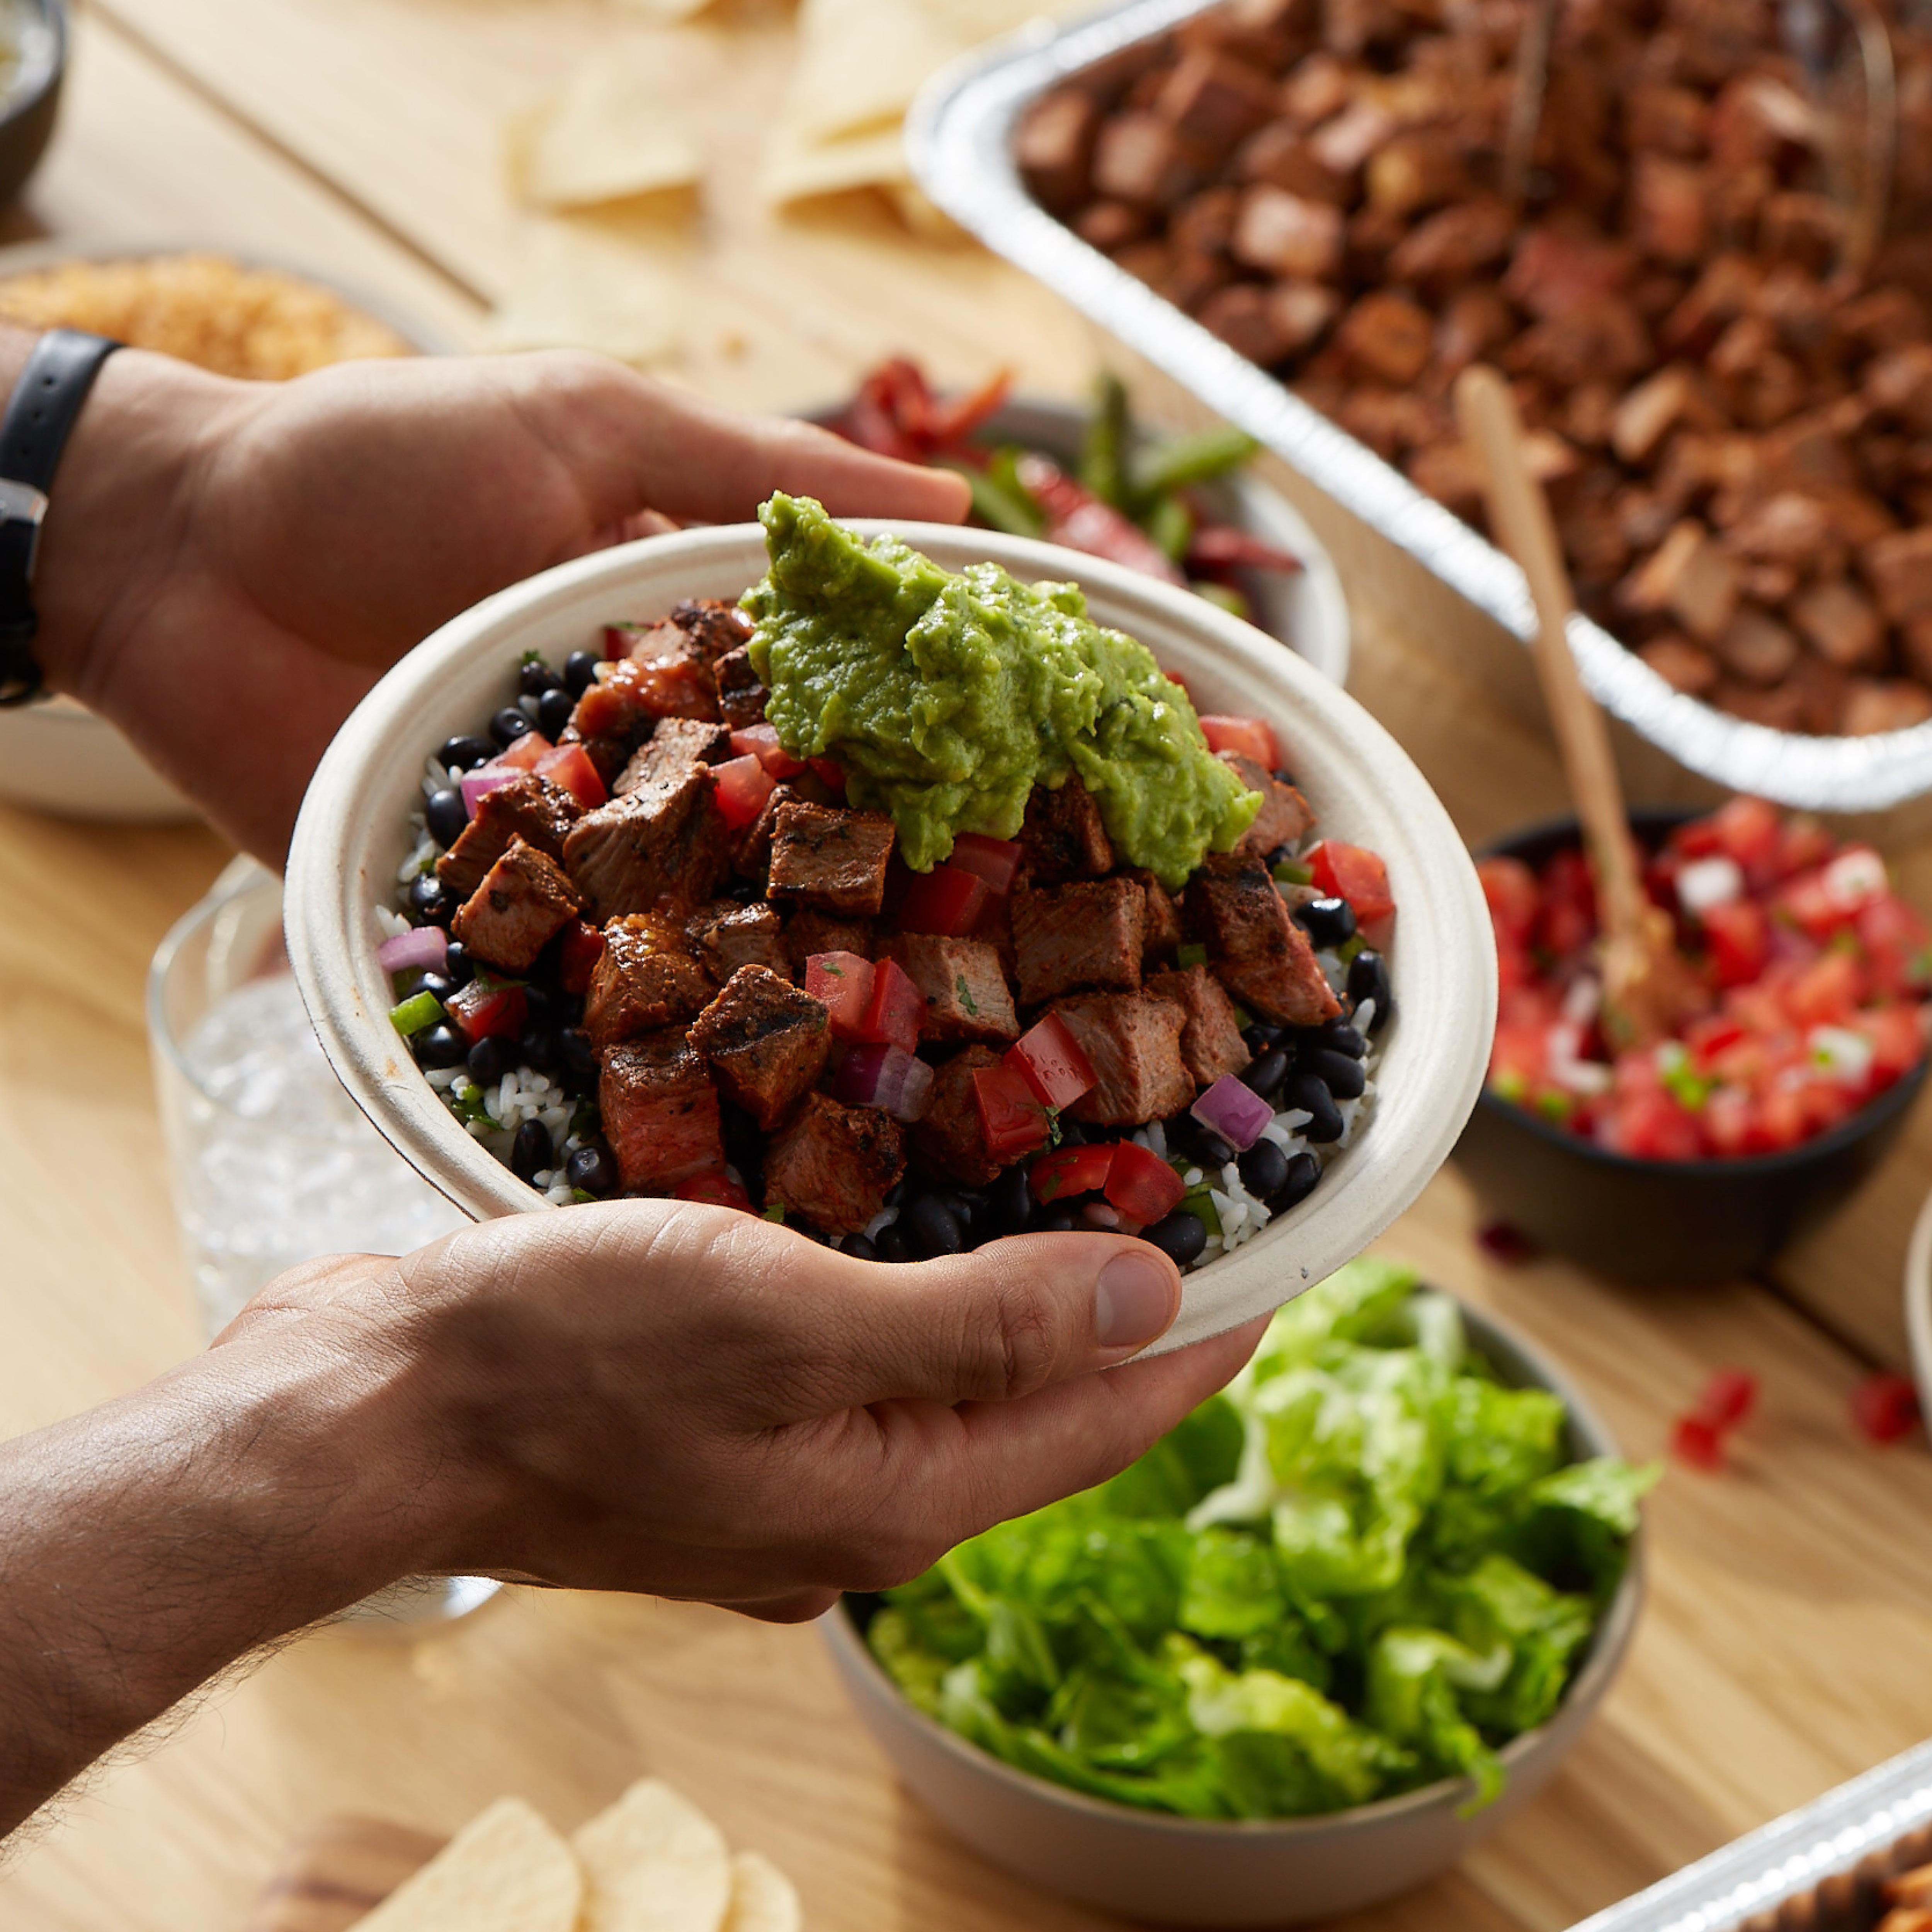 Top any of your flavorful creations, like a steak burrito bowl, with fresh, hand-smashed guacamole at no charge!